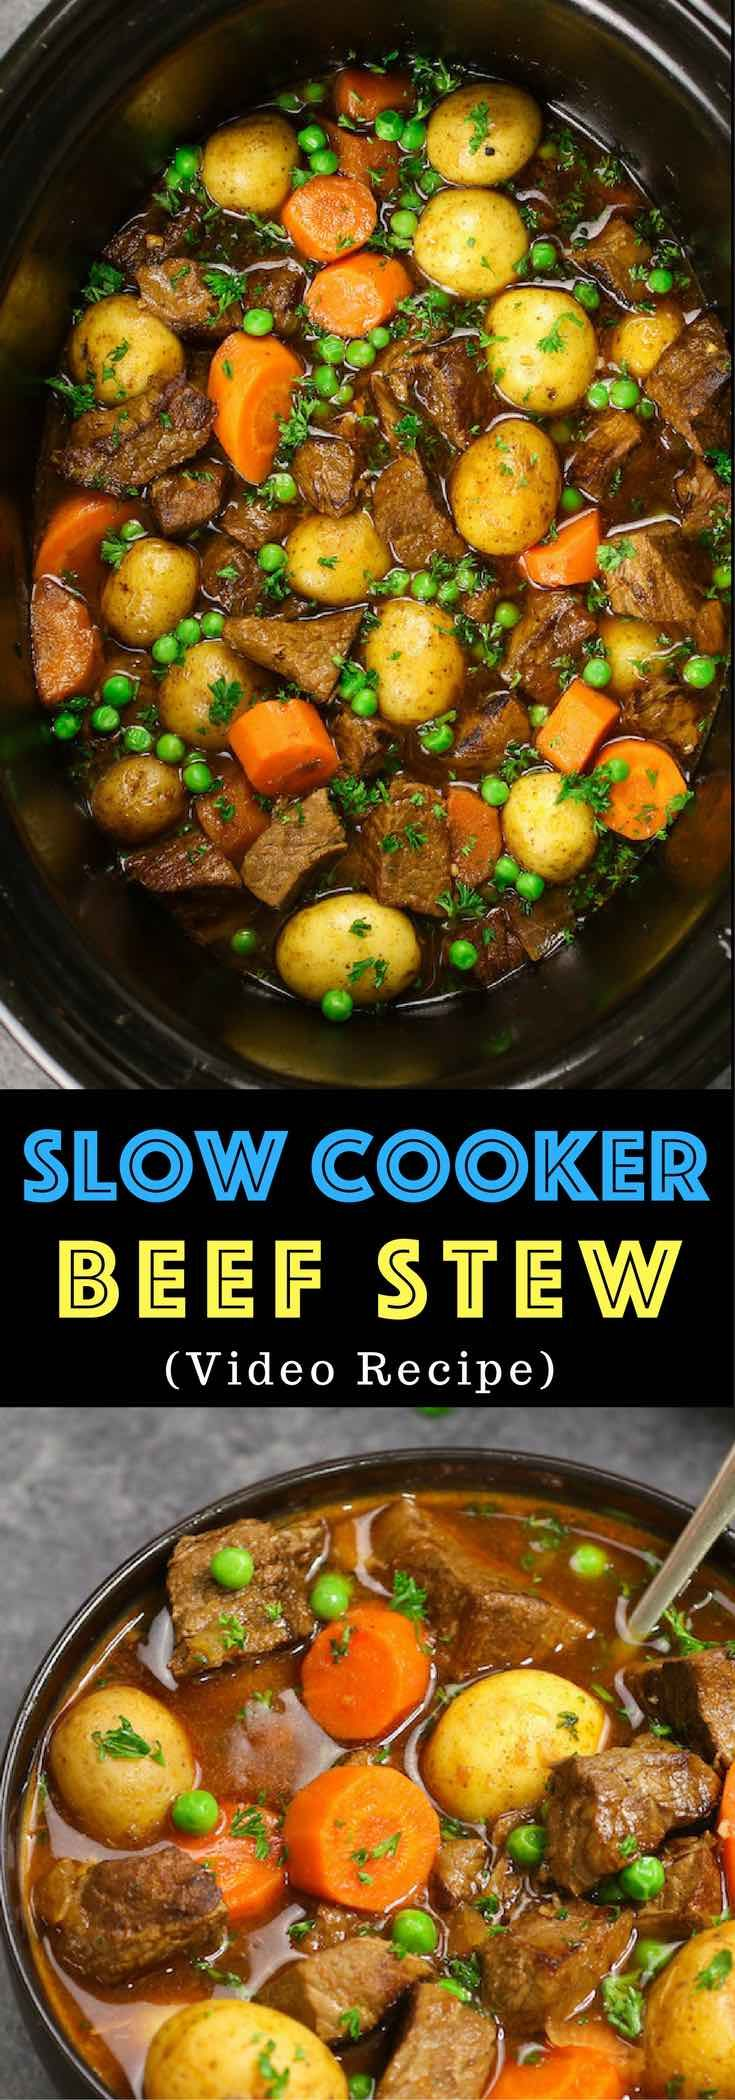 The easiest, most unbelievably delicious Slow Cooker Beef Stew. It's one of my favorite comforting crock pot recipes. Juicy and tender beef cooked with onions, carrots, green peas and potatoes with garlic, red wine, Worcestershire sauce, Italian seasoning and beef broth. So delicious. Easy one pot recipe. via @tipbuzz